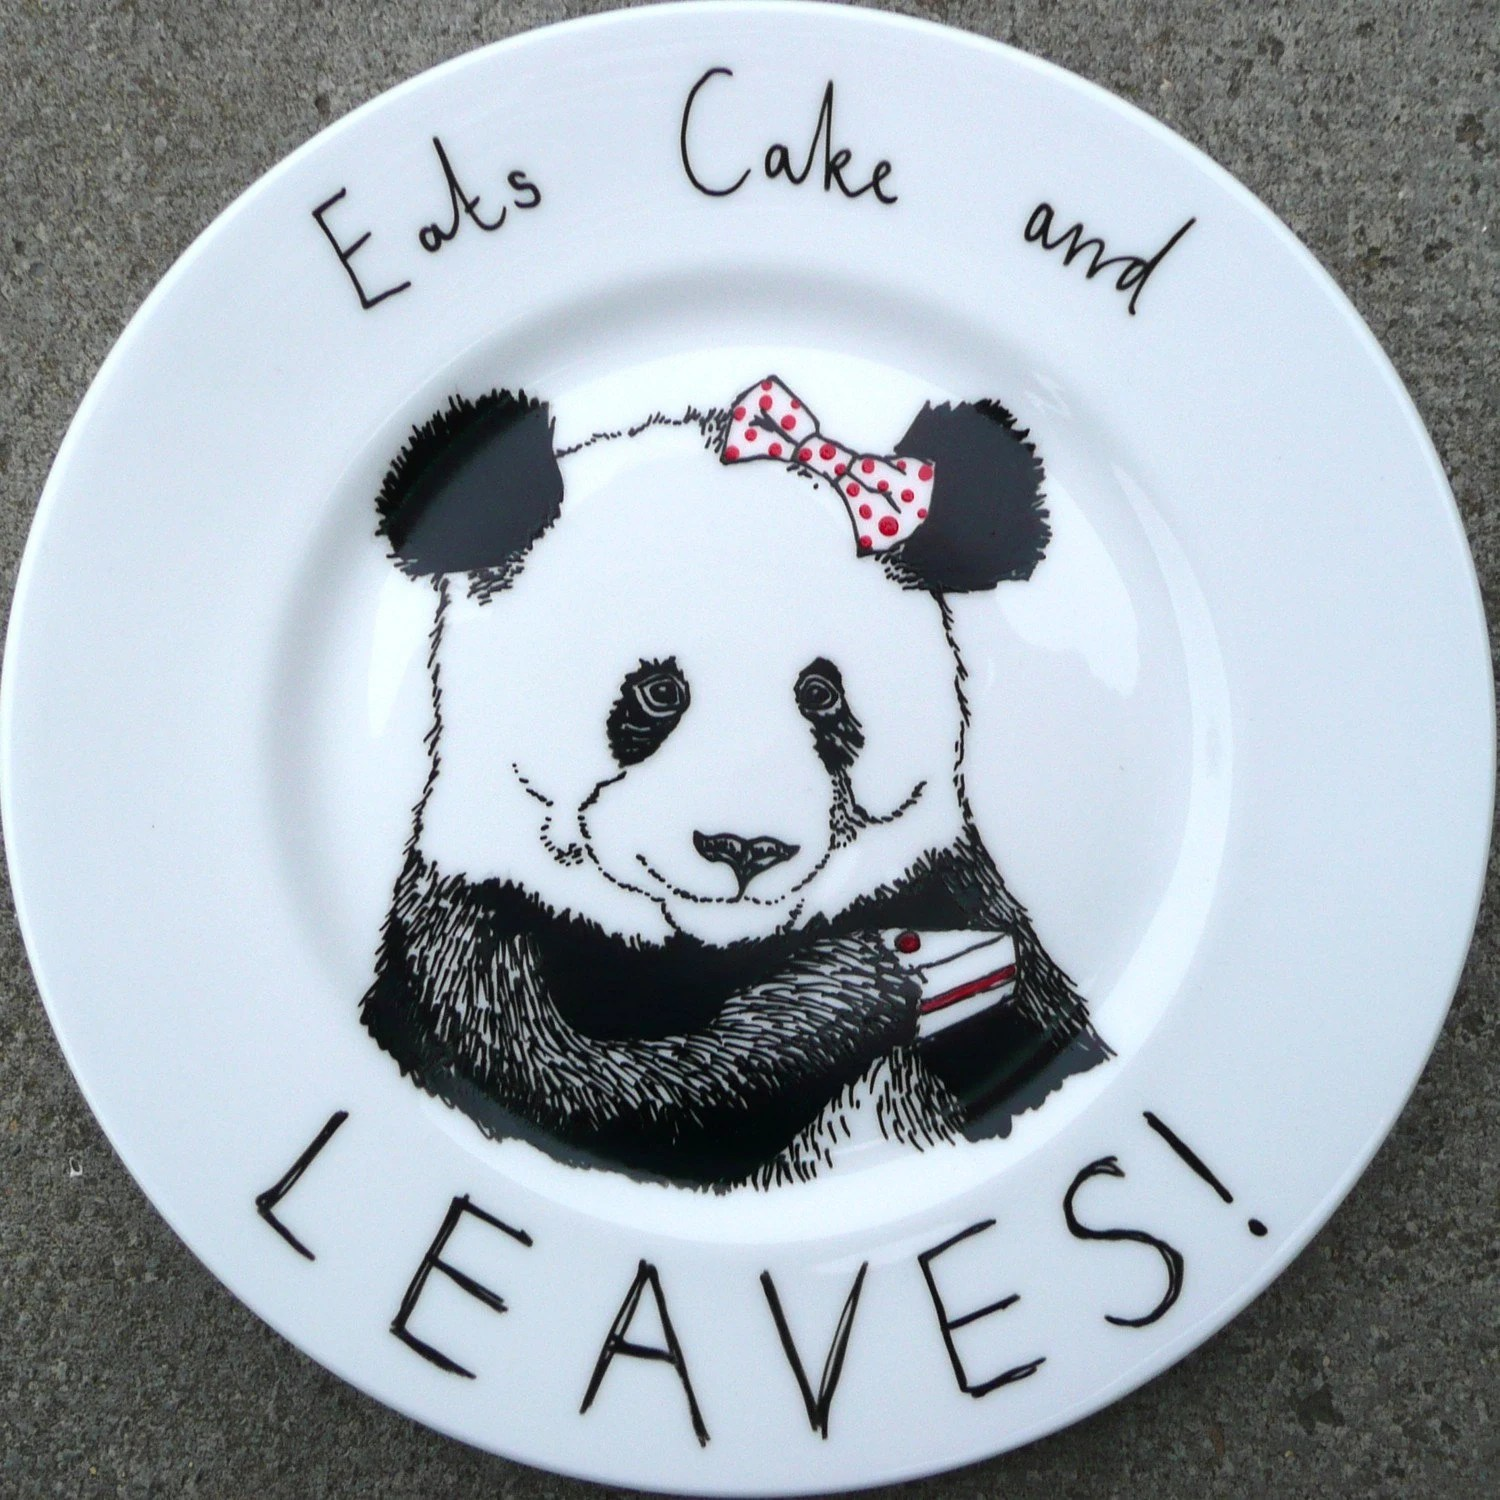 Hand Drawn Panda Plate - Eats Cake and Leaves